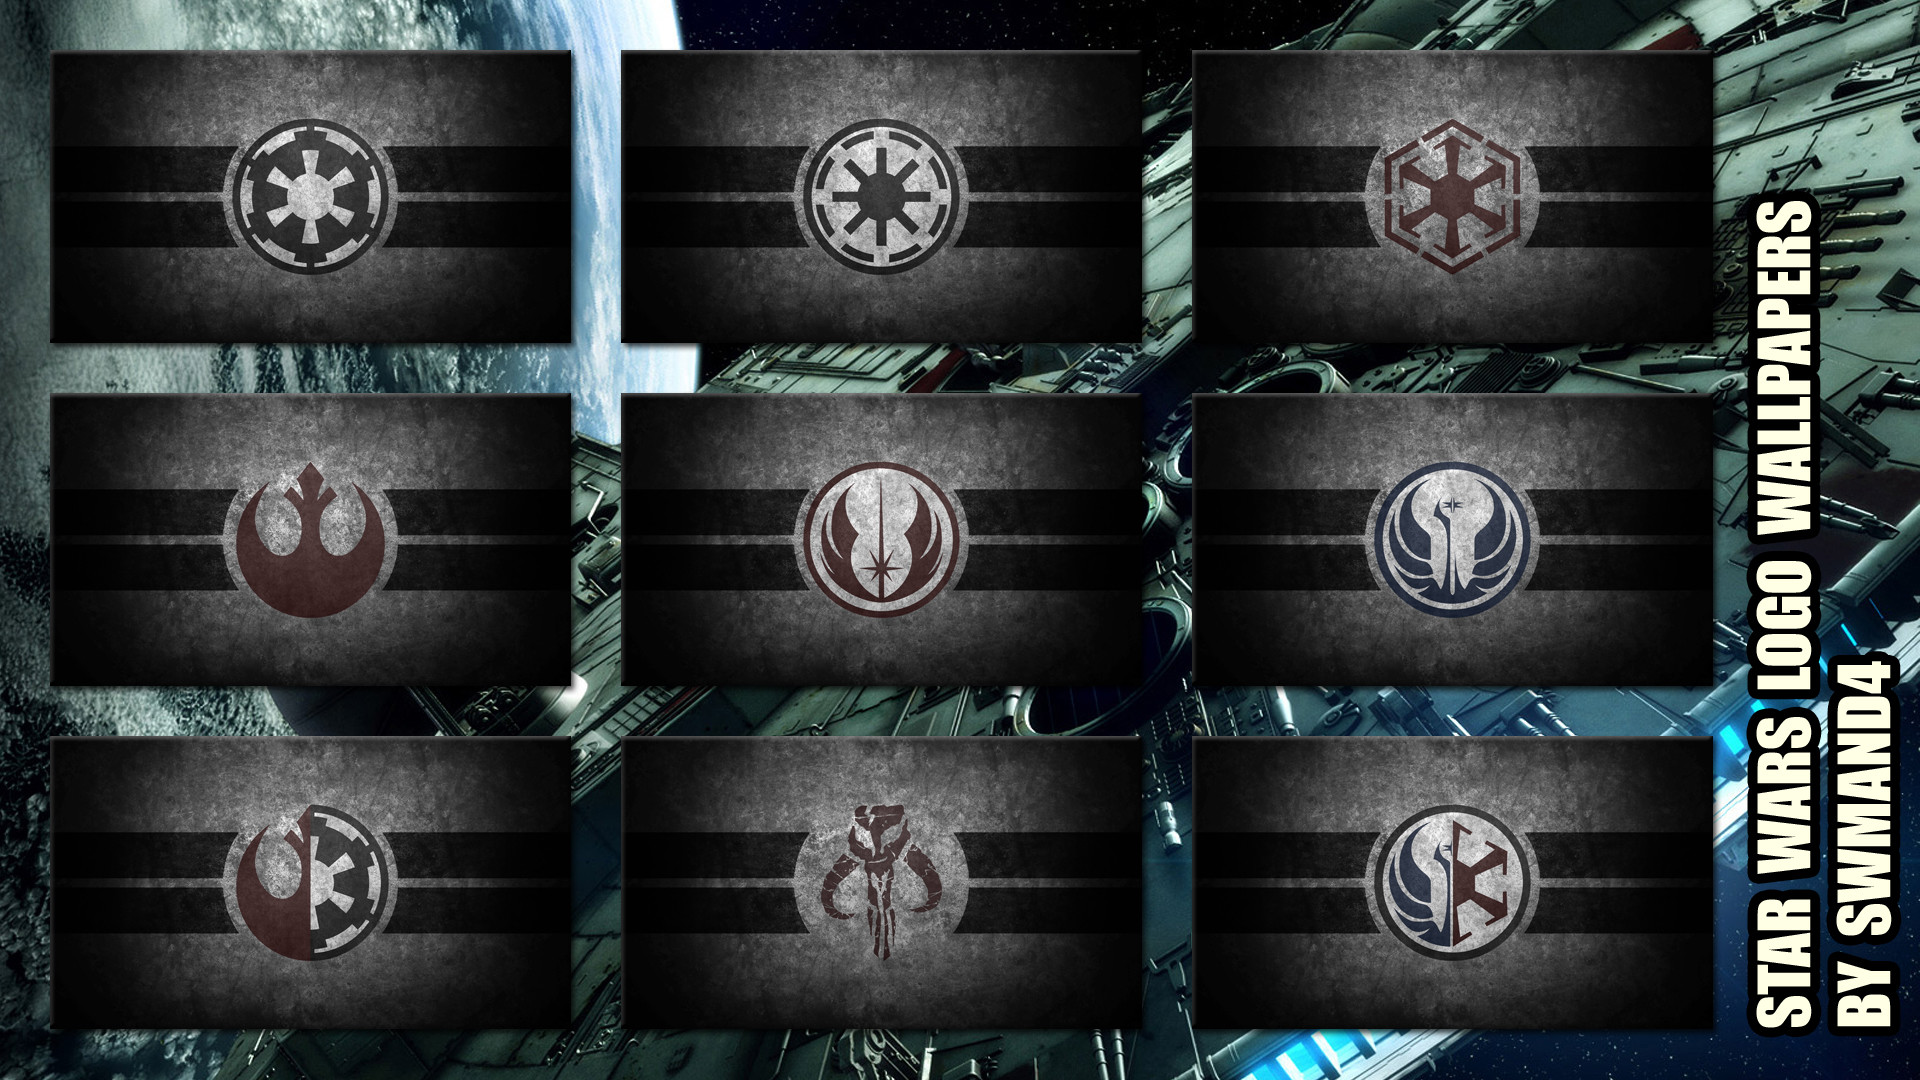 Star Wars Logos Wallpapers By Swmand4 Star Wars Logos Star Wars Grey Jedi Symbol 1920x1080 Wallpaper Teahub Io